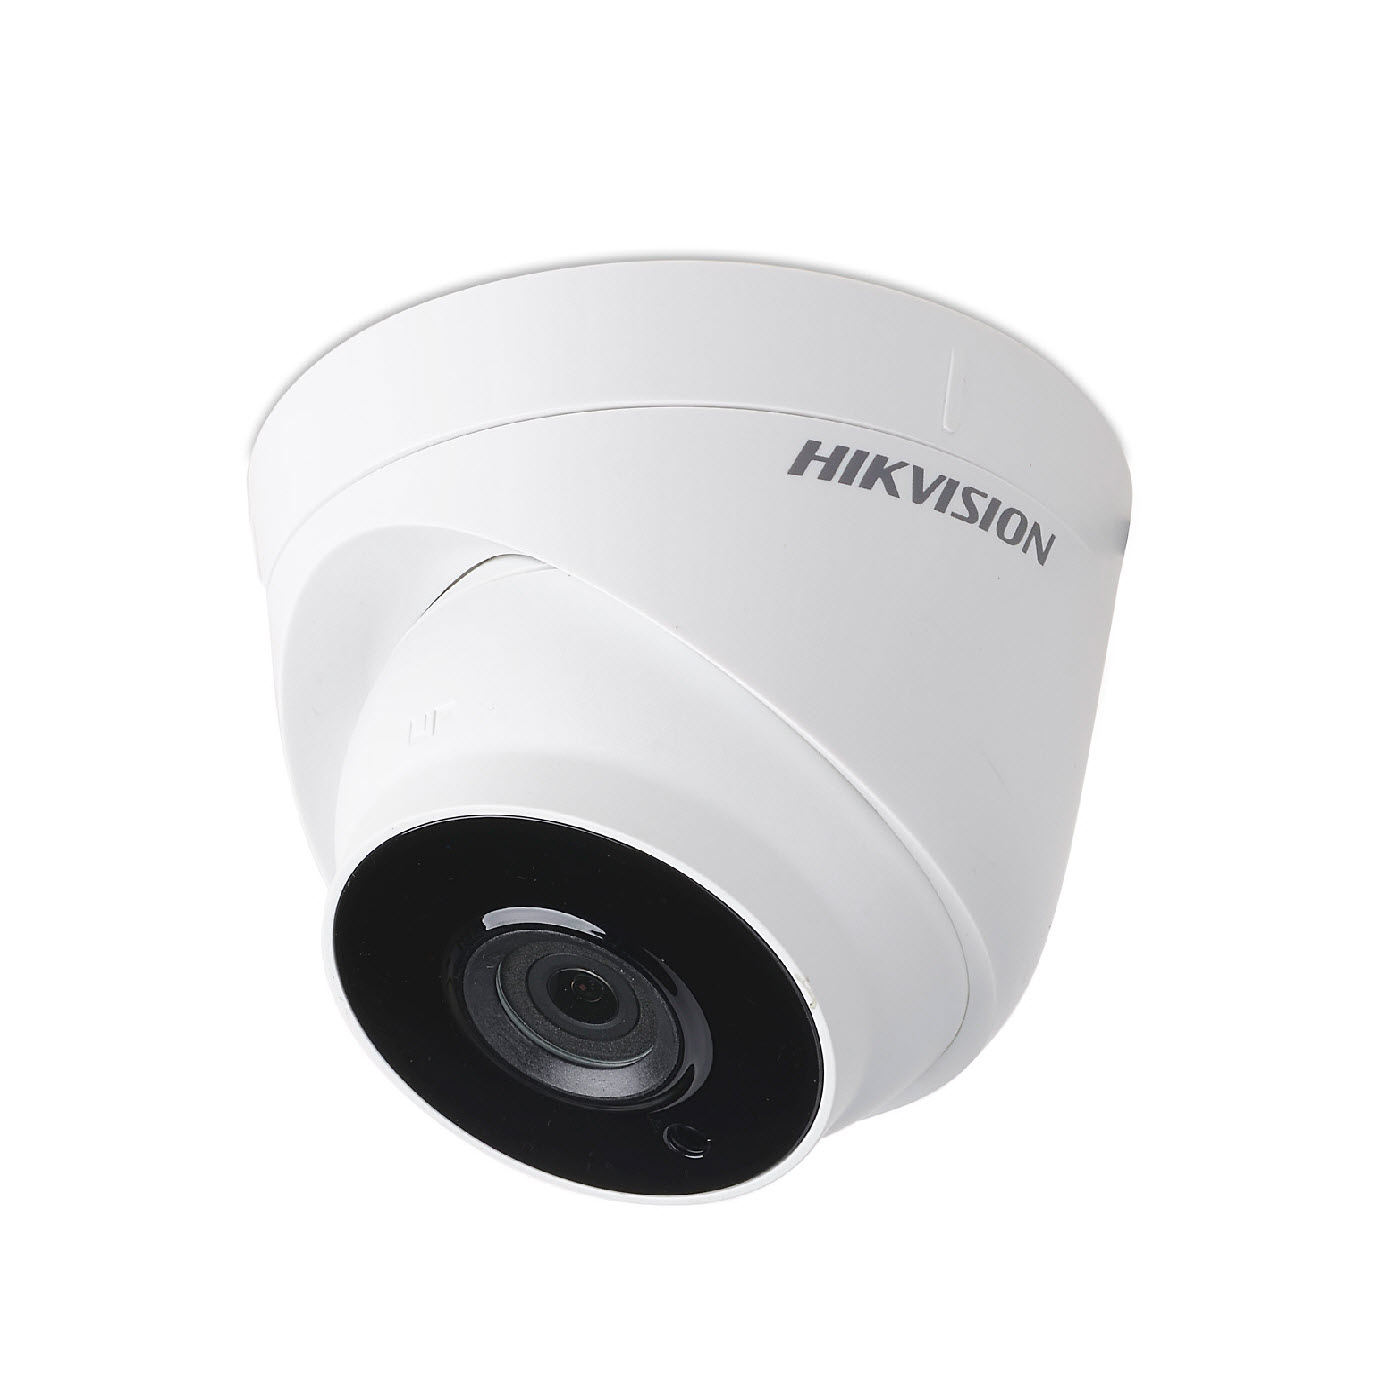 Hikvision DS-2CD1341-I 4MP IR Turret Dome Network Camera